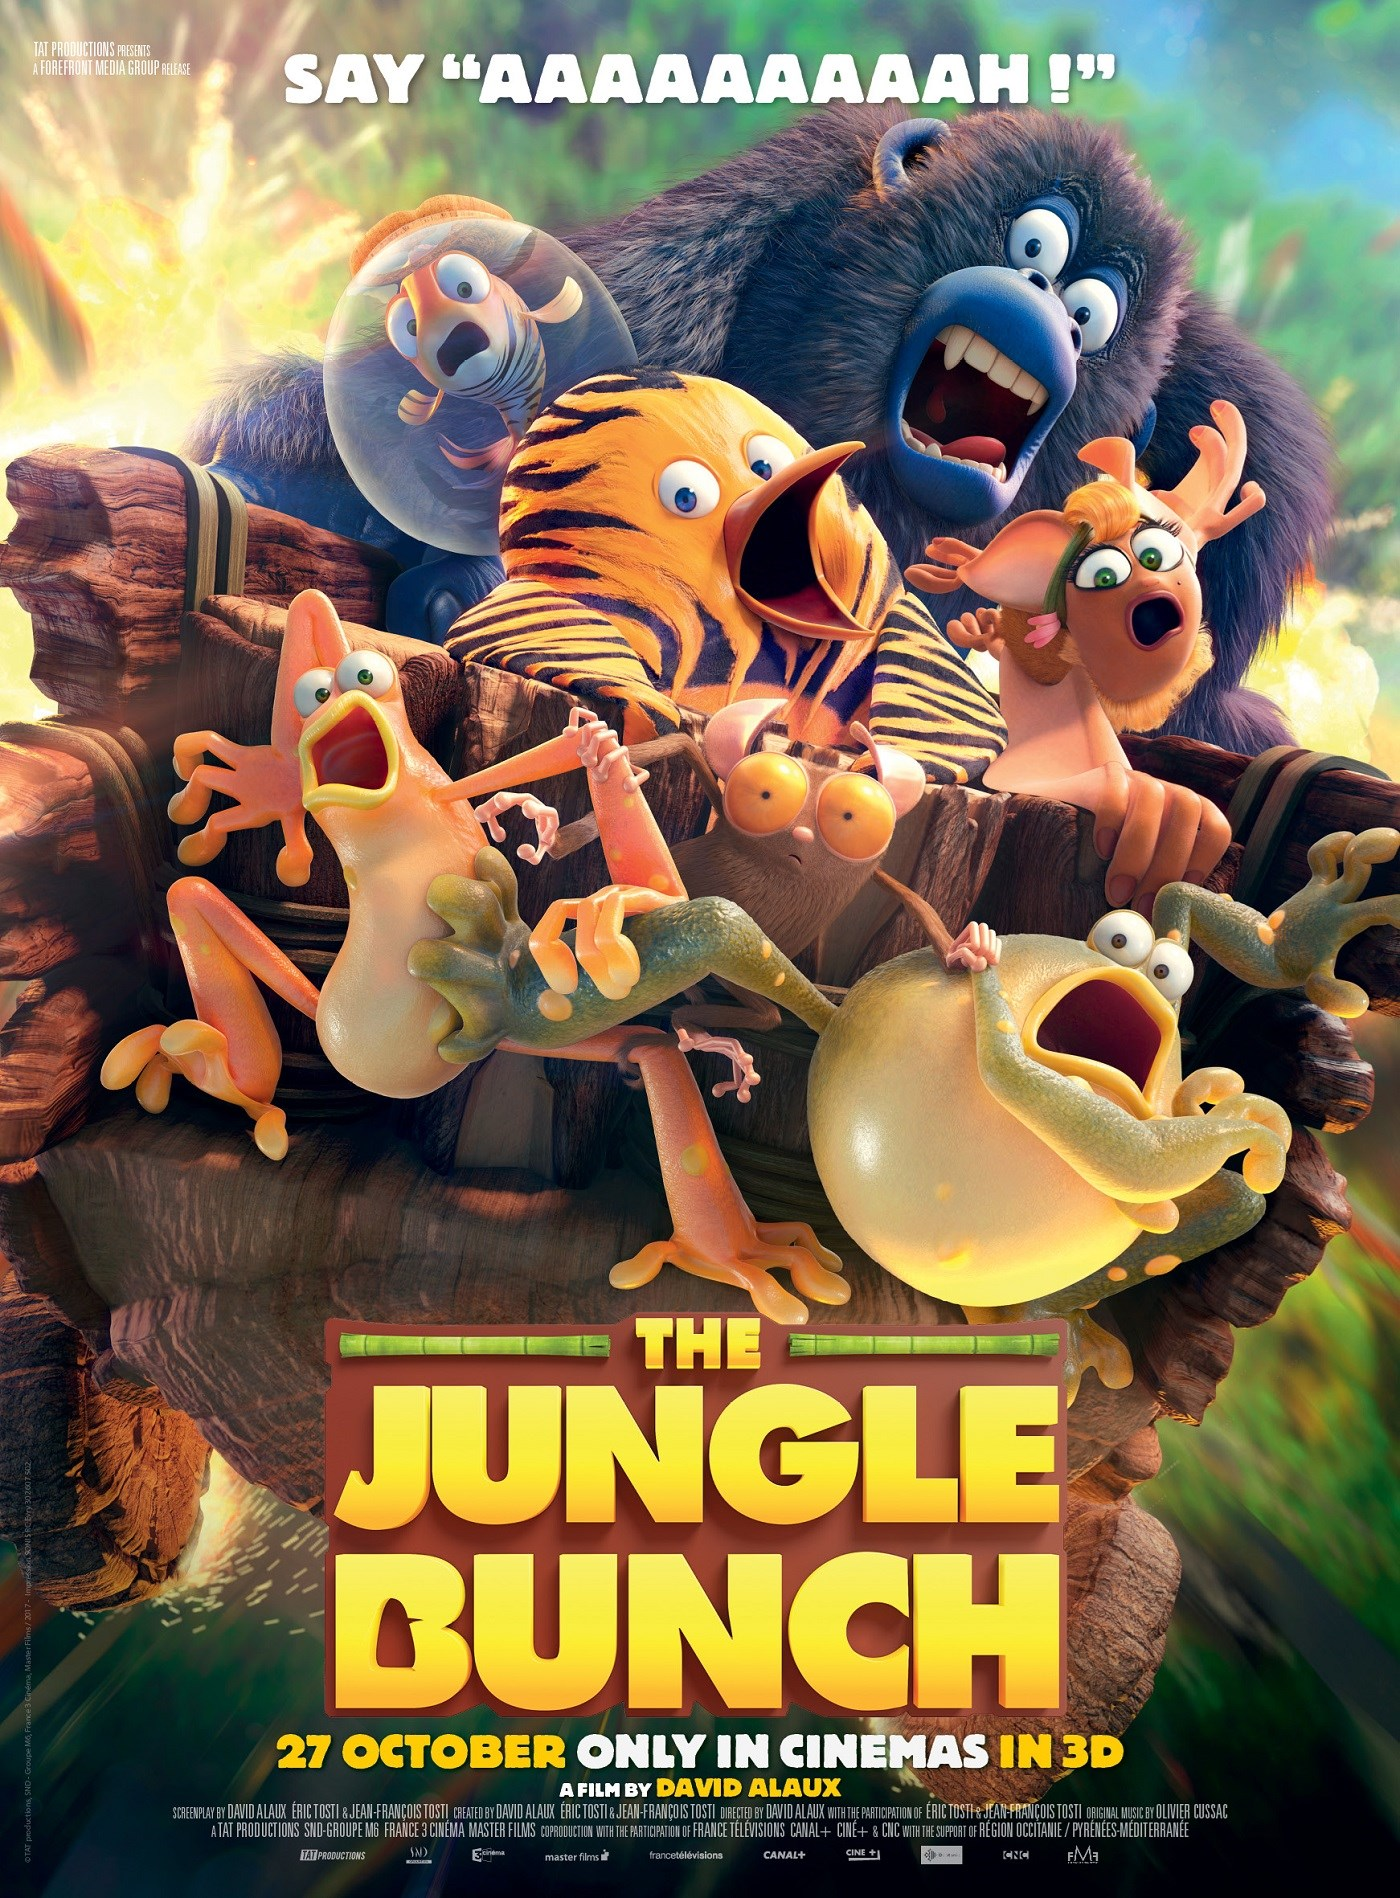 JUNGLE BUNCH now showing at Shelly Centre